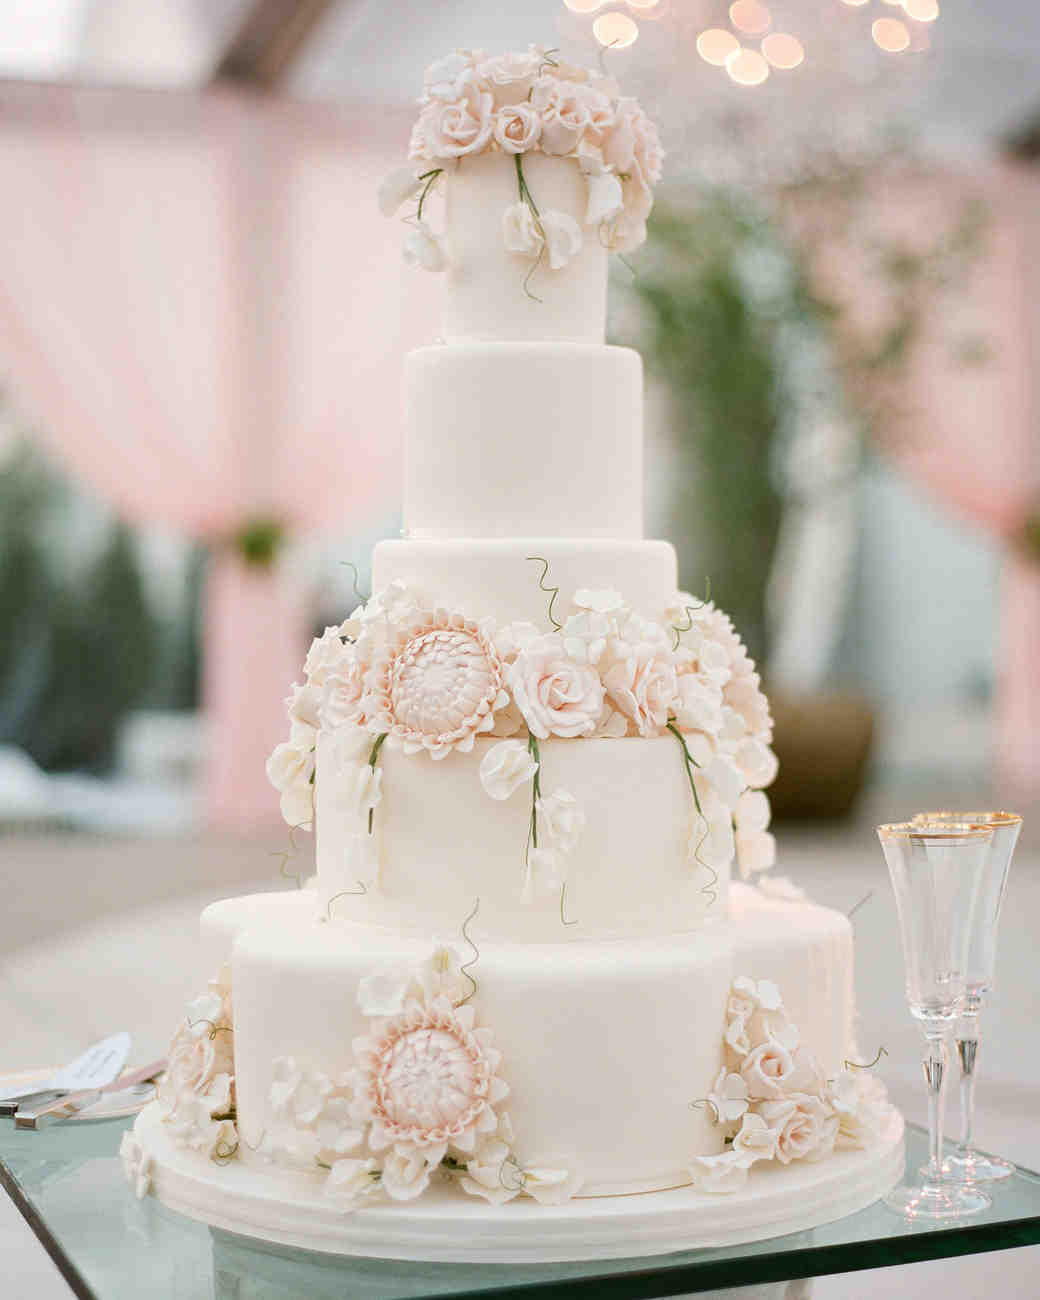 7 Delicious Vegan Wedding Cakes Martha Stewart Weddings